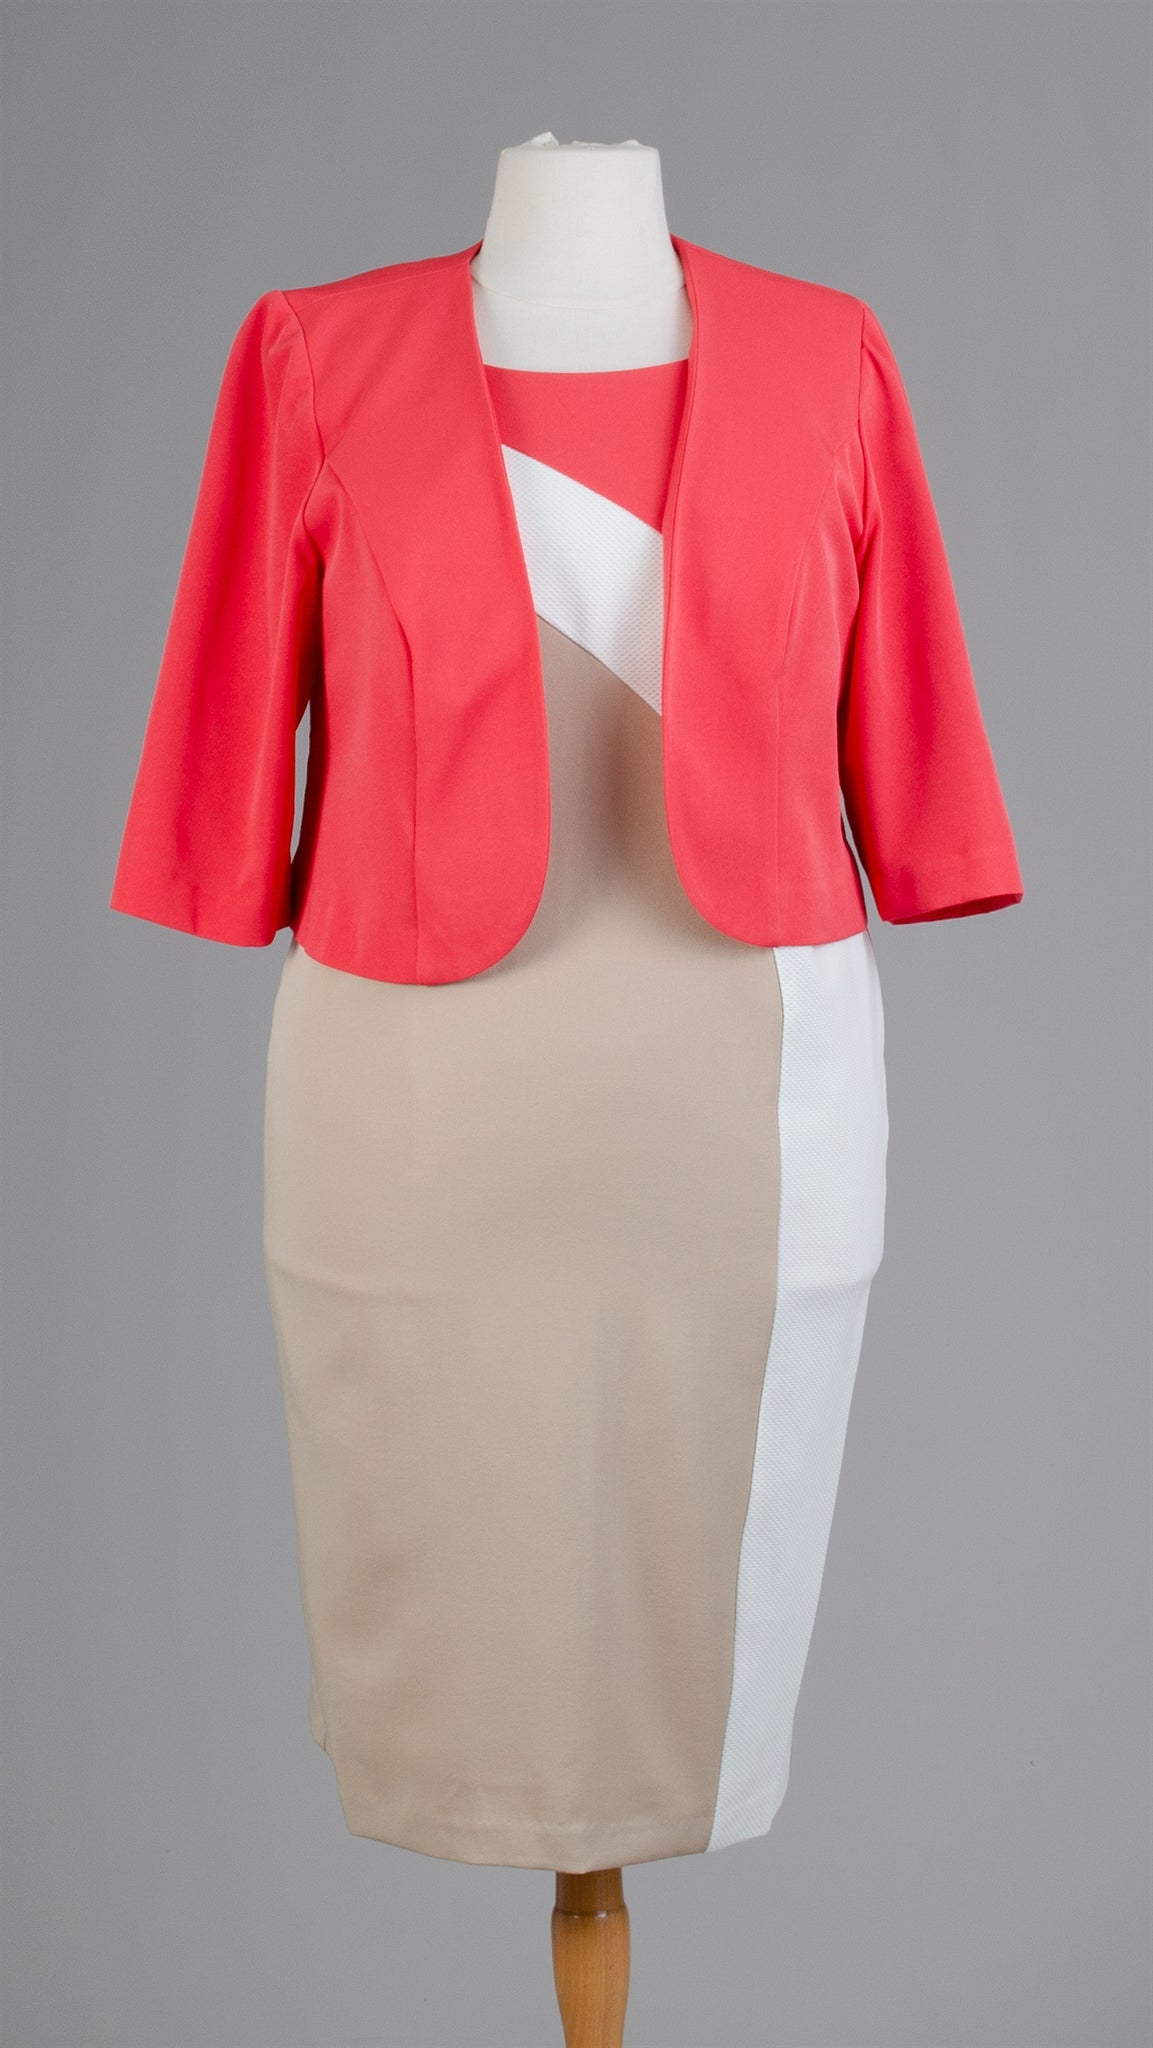 Maya Brook Jacket Dress 29061-Coral/Beige - Church Suits For Less